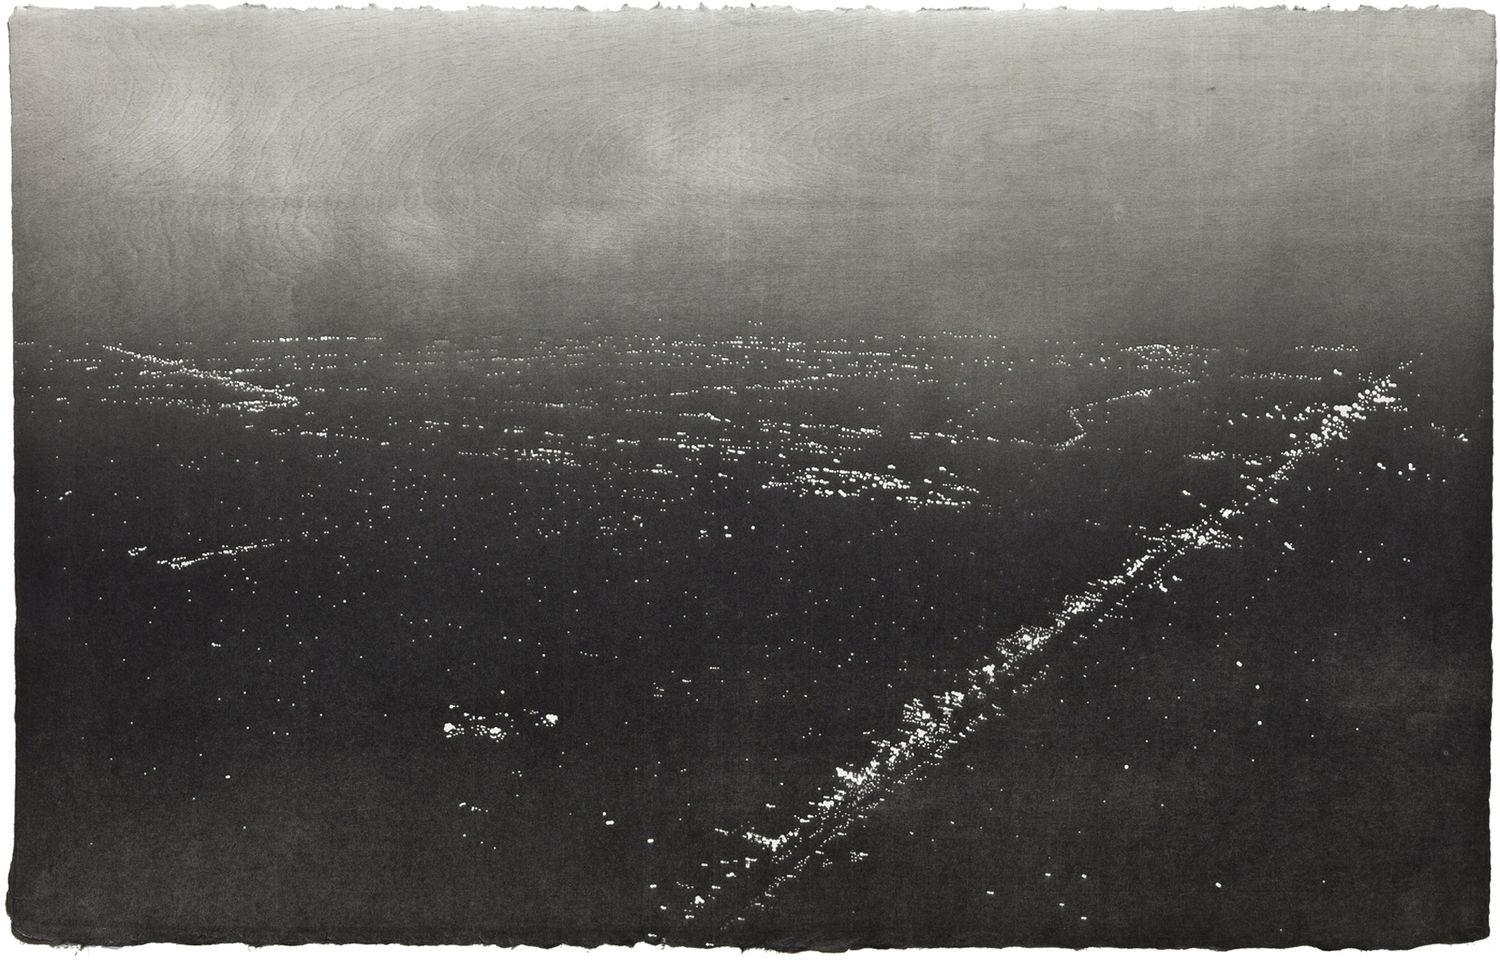 Susan Goethel Campbell - Aerial, Other Cities, 2014